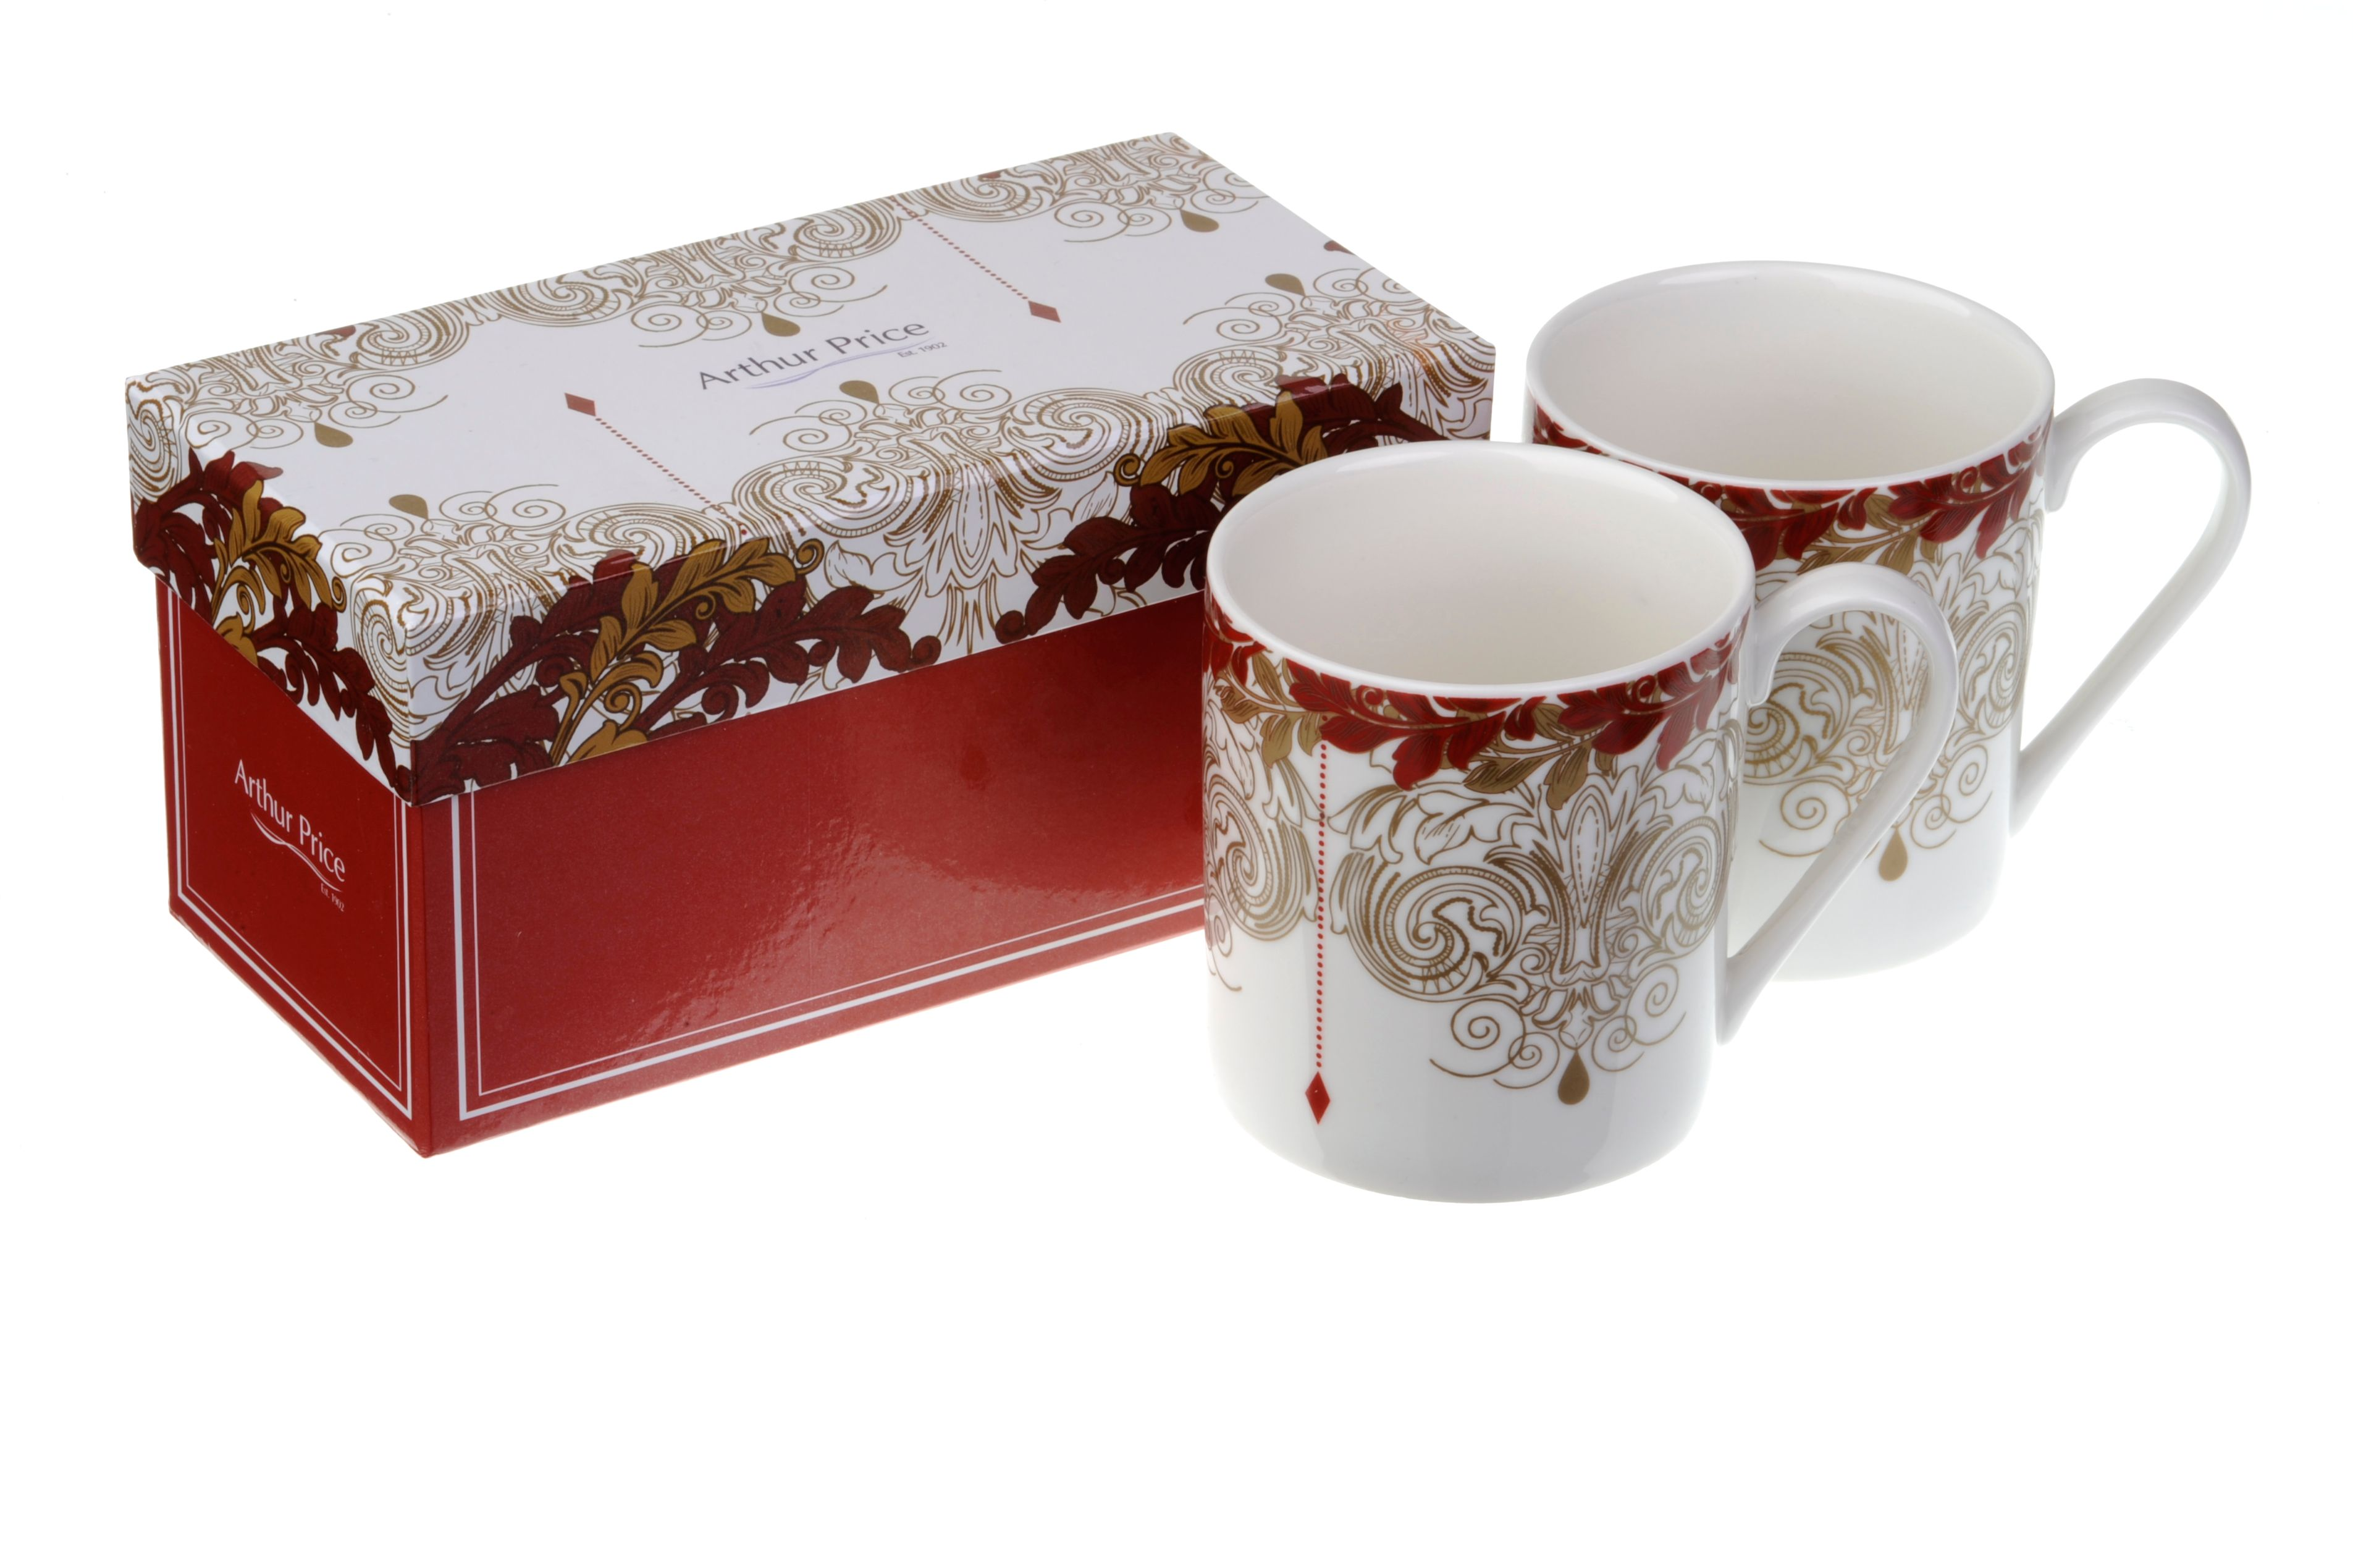 Pair of Arthur Price Christmas mugs frankincense